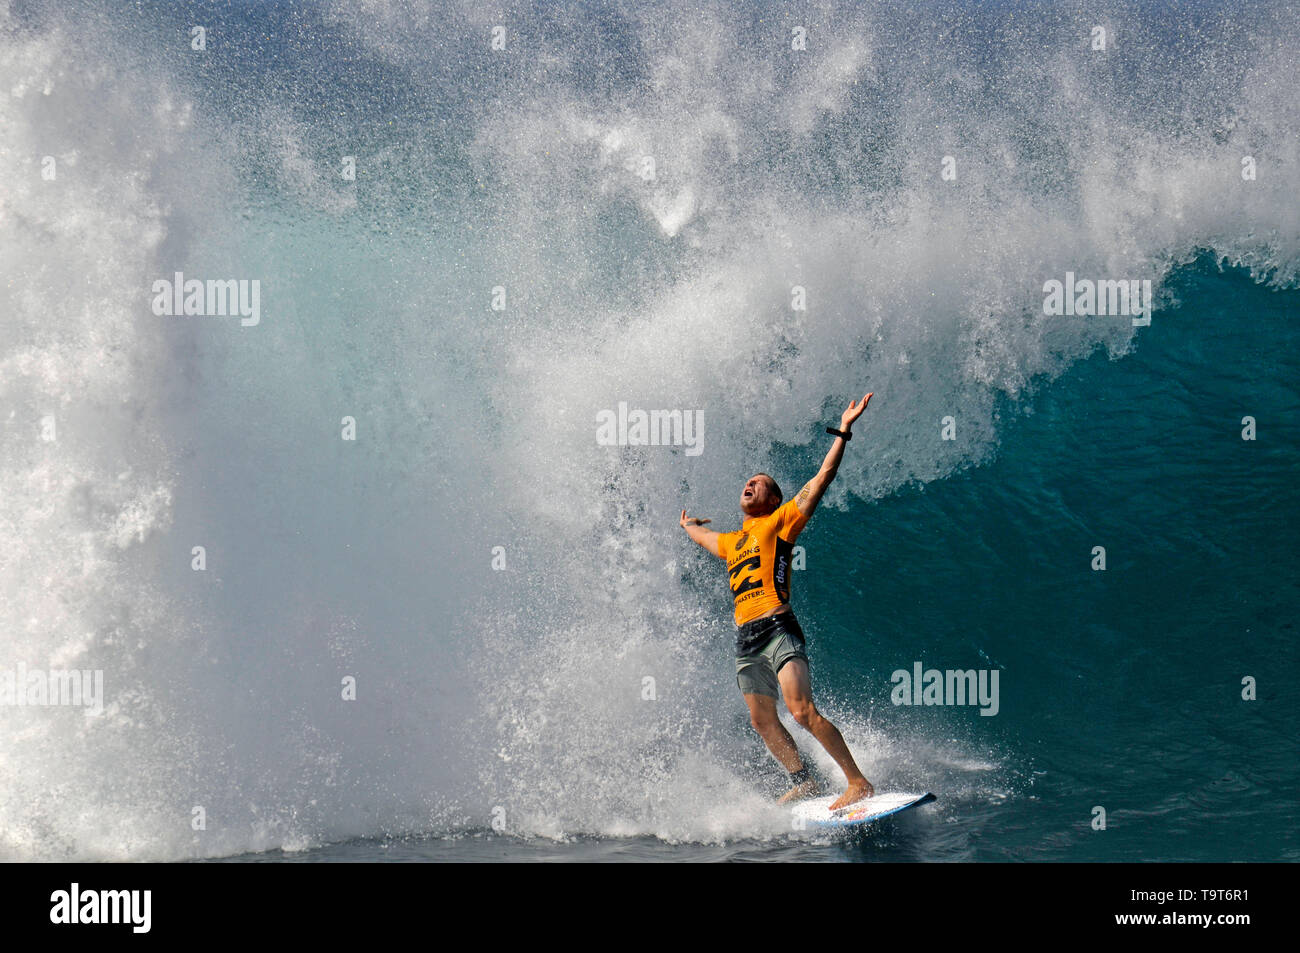 Professional surfer Mick Fanning celebrates surfing a big wave in Pipeline during the Billabong Pipe Masters Championship 2015, North Shore of Oahu, H - Stock Image